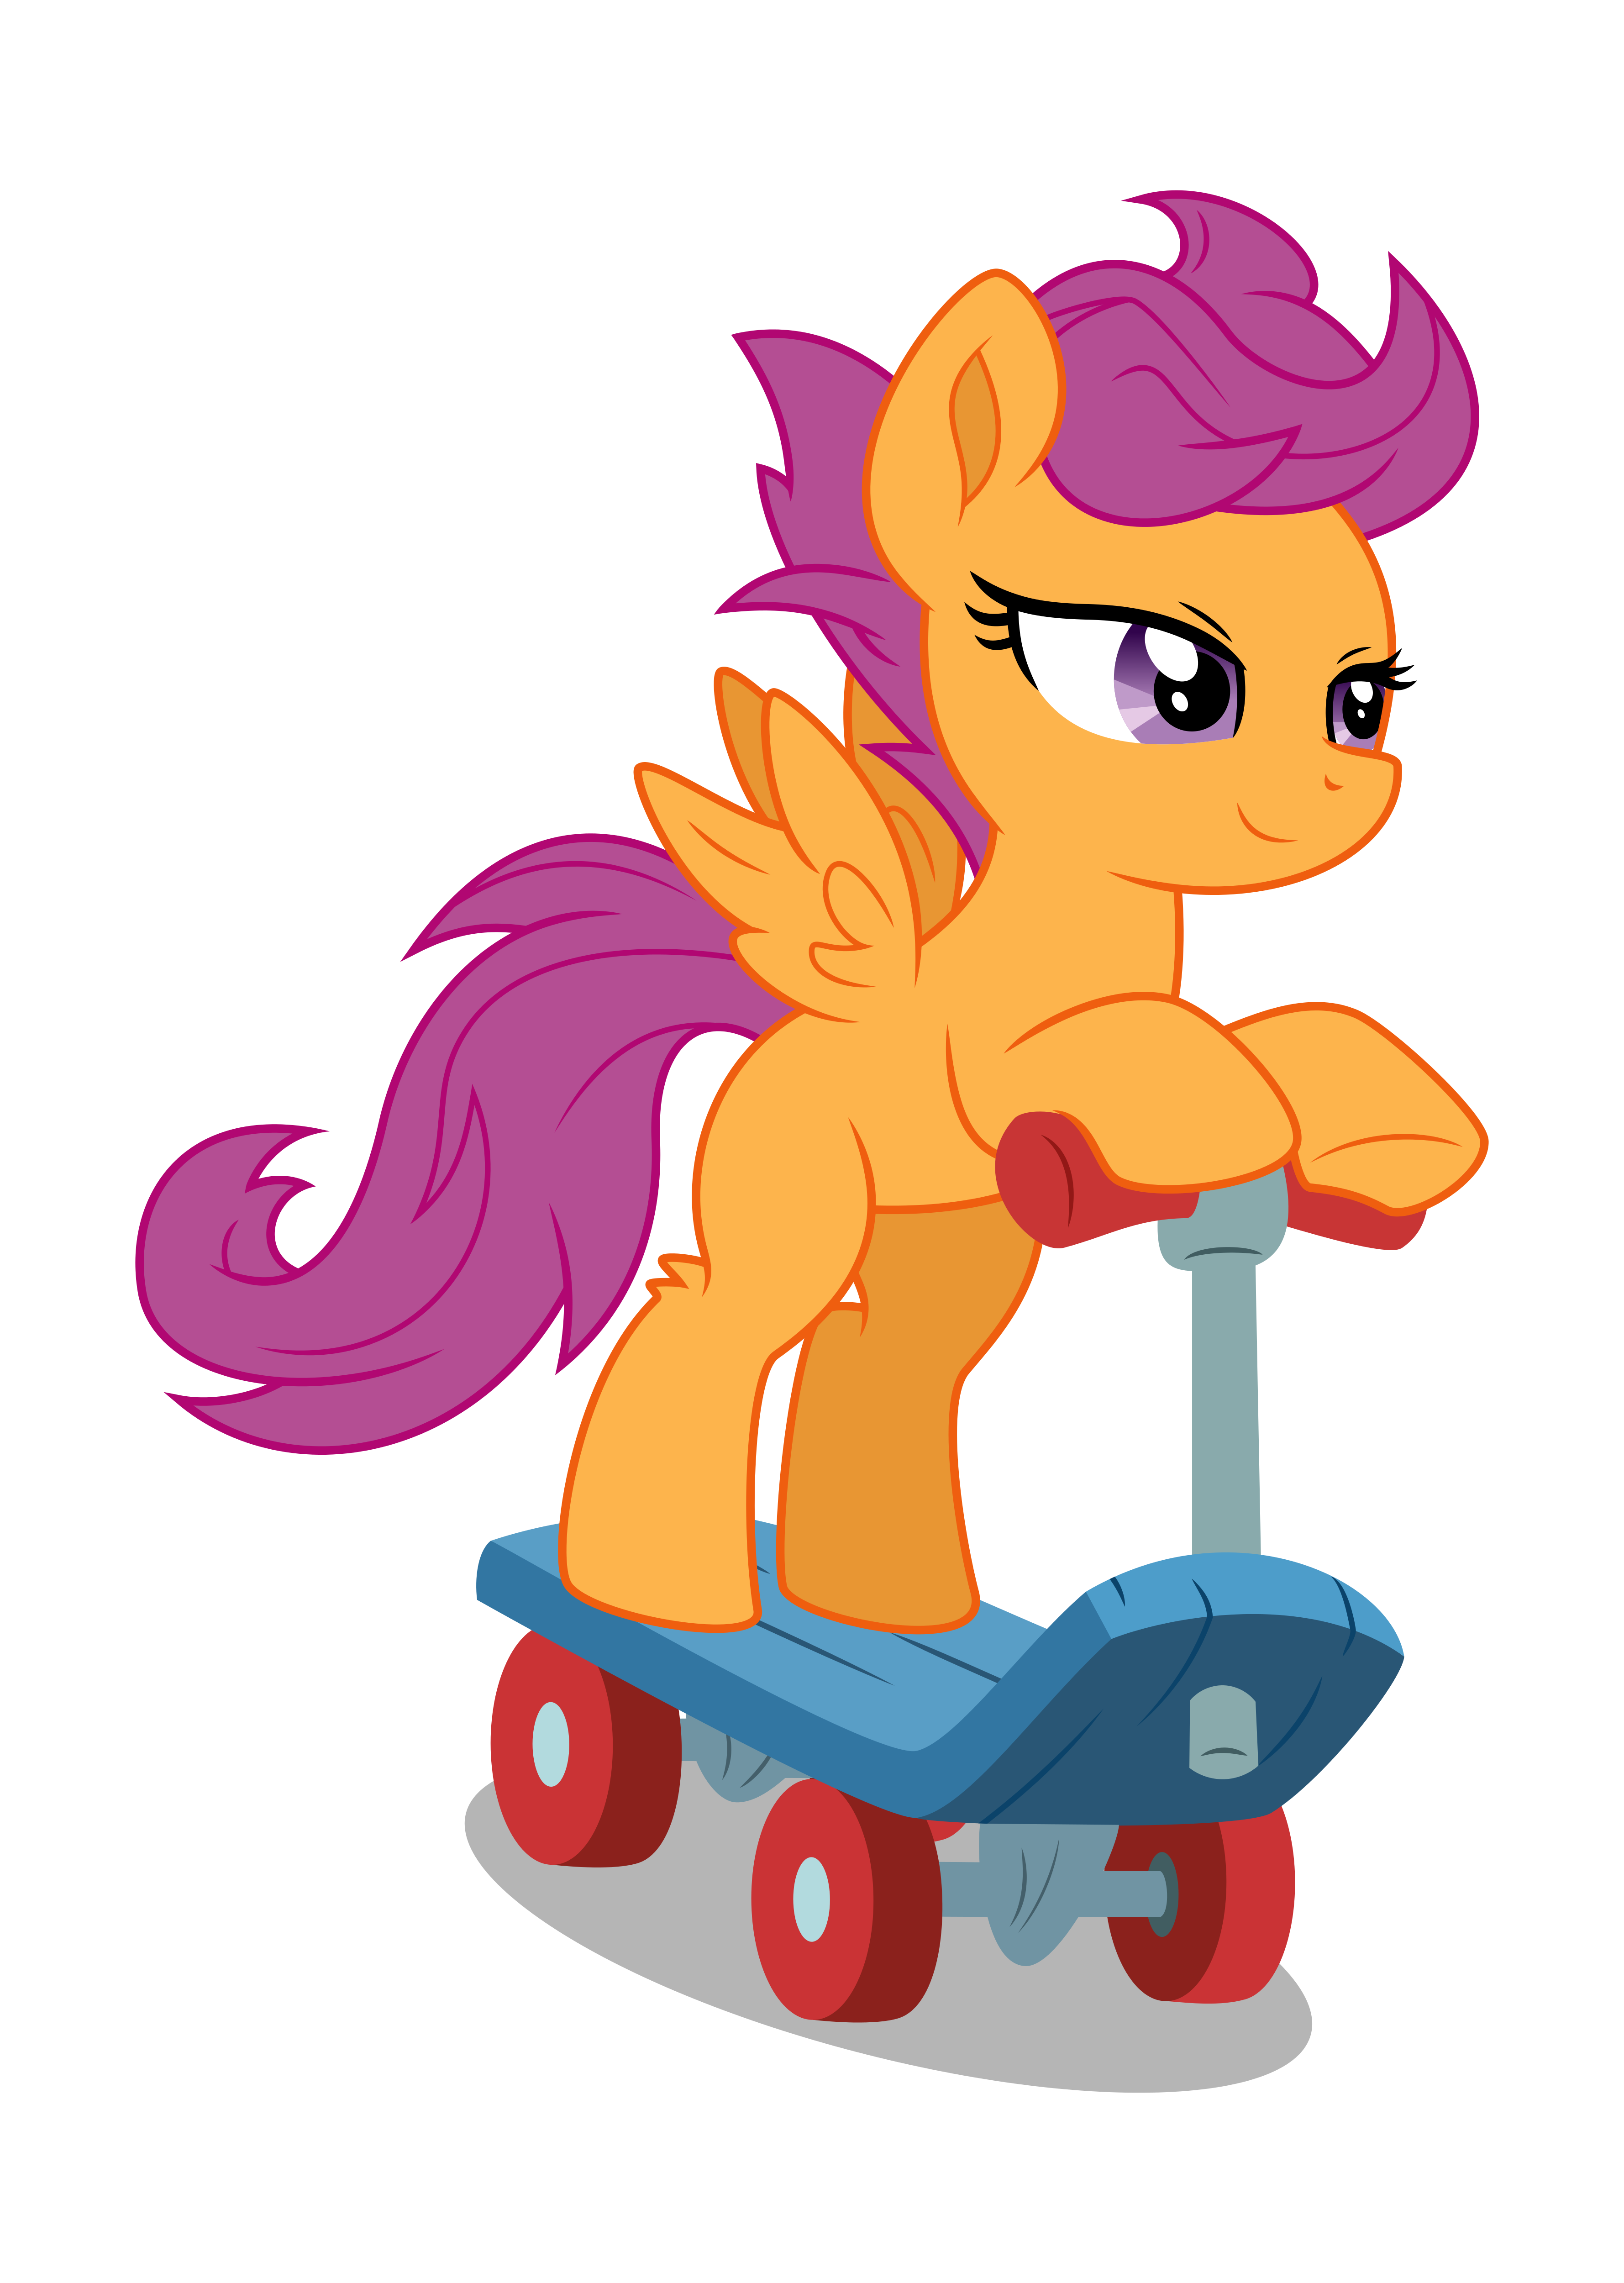 Scooting Along (Vectorized) by Ambassad0r